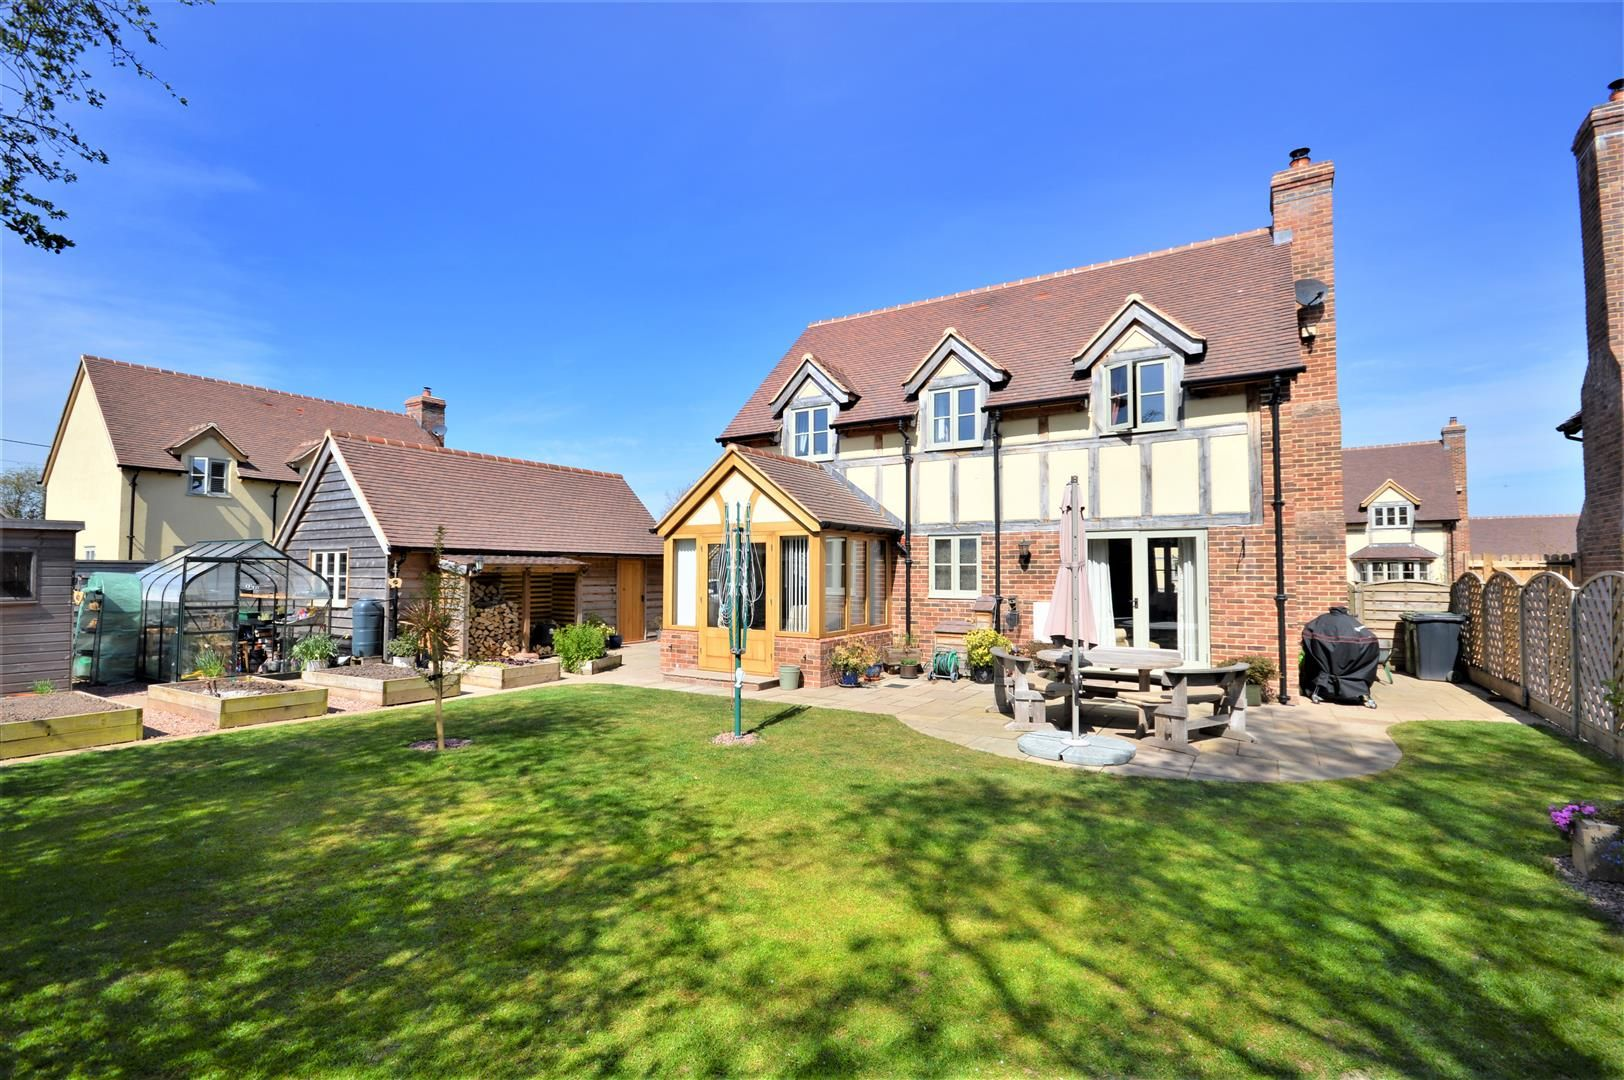 3 bed detached for sale in Winforton, HR3